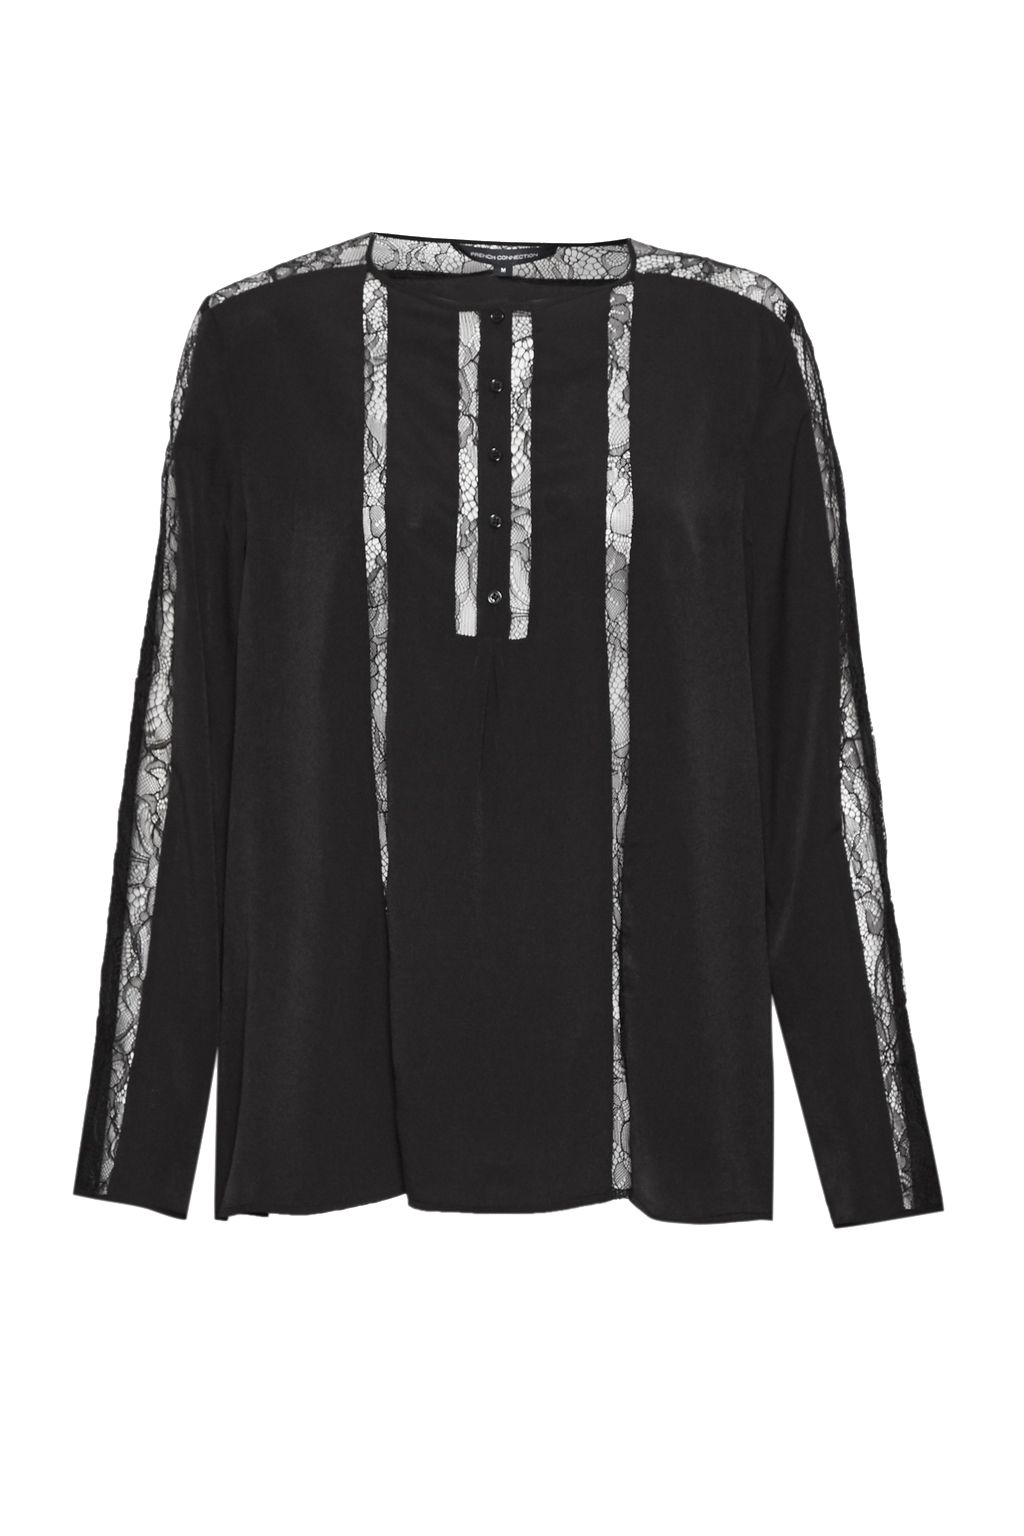 French Connection Polly Plains Lace Trim Blouse, Black